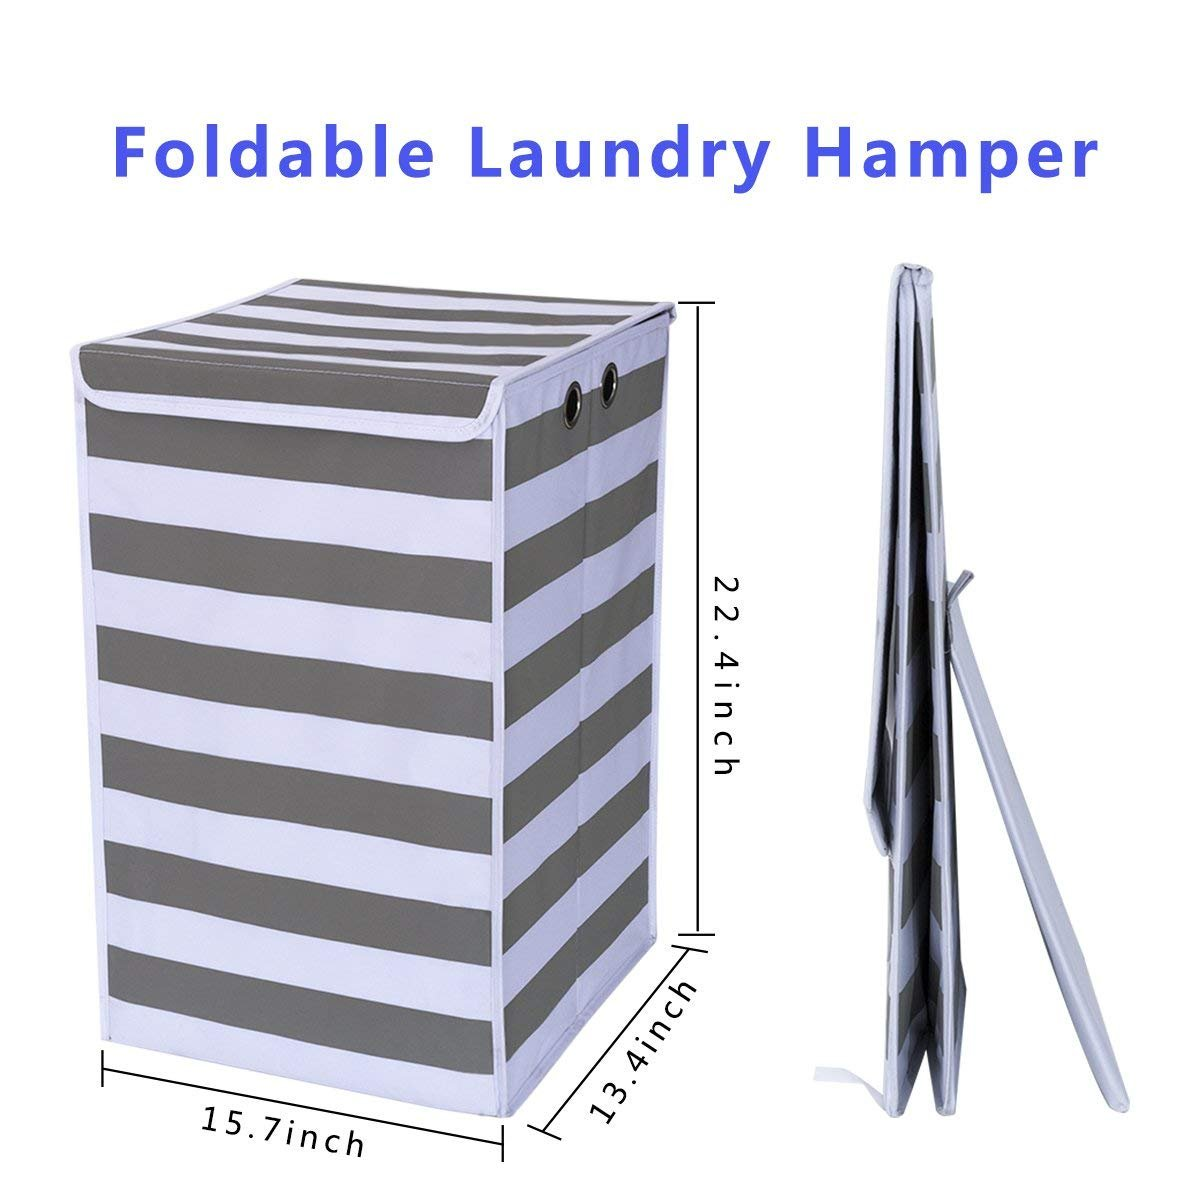 Chrislley Large Foldable Laundry Hamper Durable Laundry Basket Dirty Clothes Laundry Bag with Lid for Home College Room (White and Grey)